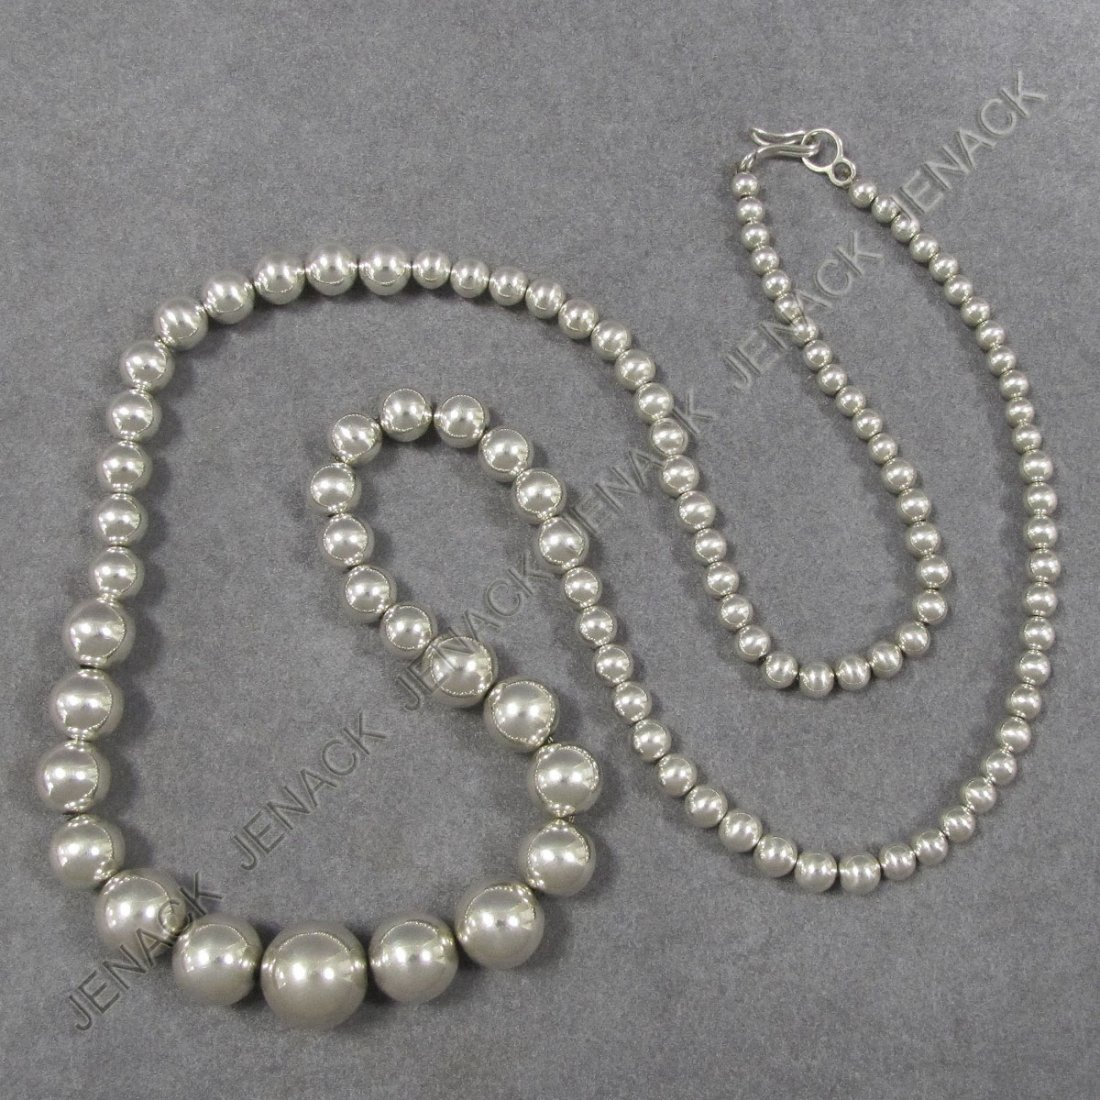 21: GRADUATED STRAND SILVER BEADS